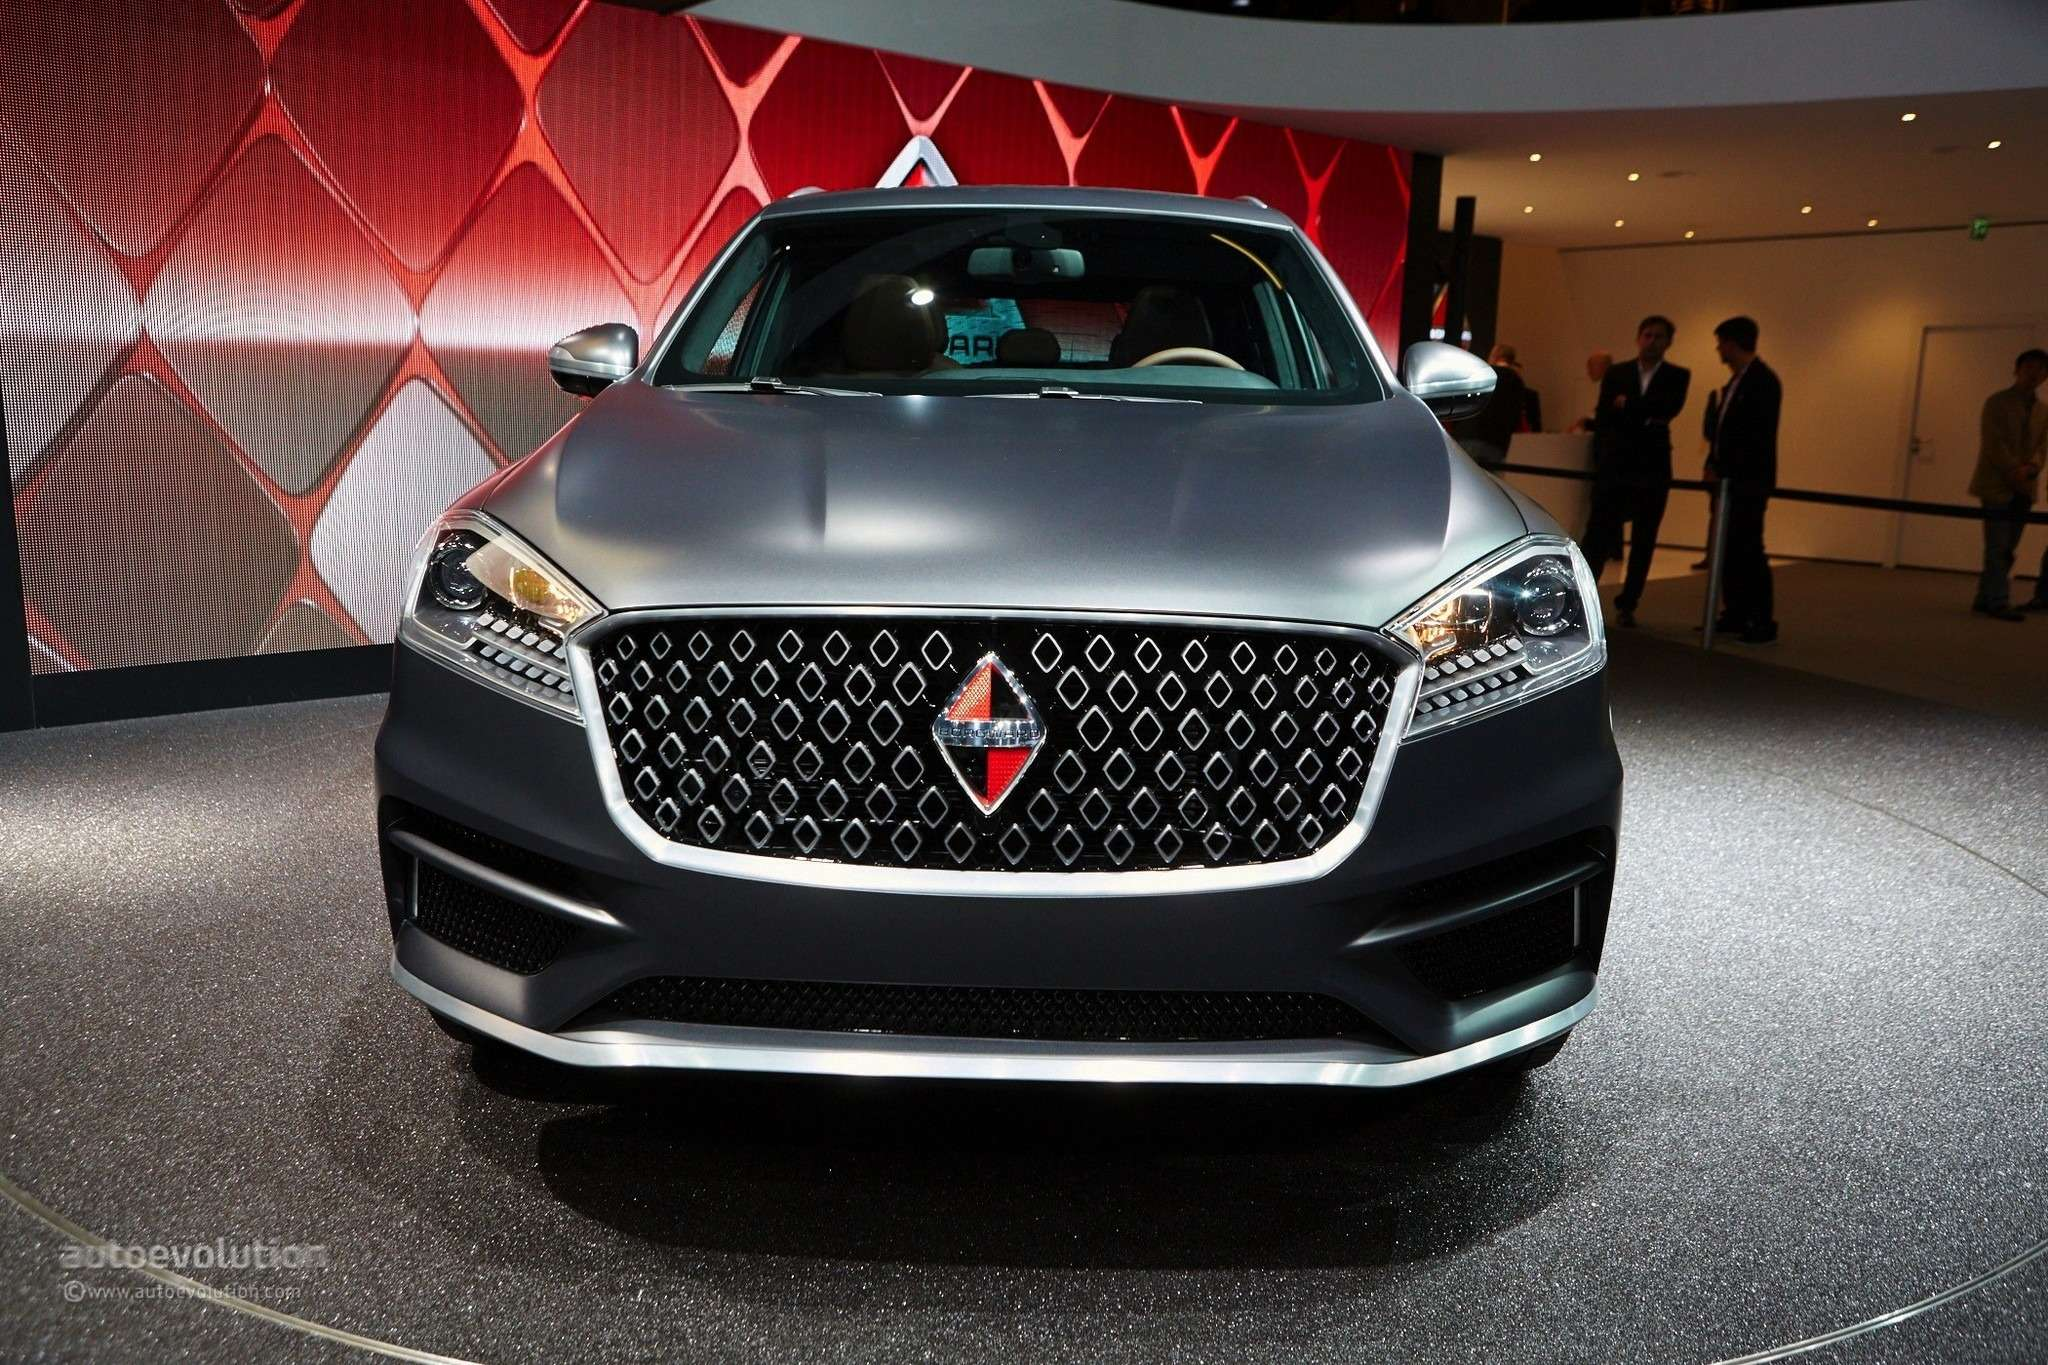 borgward-is-officially-back-with-its-bx7-suv-in-frankfurt-live-photos_28